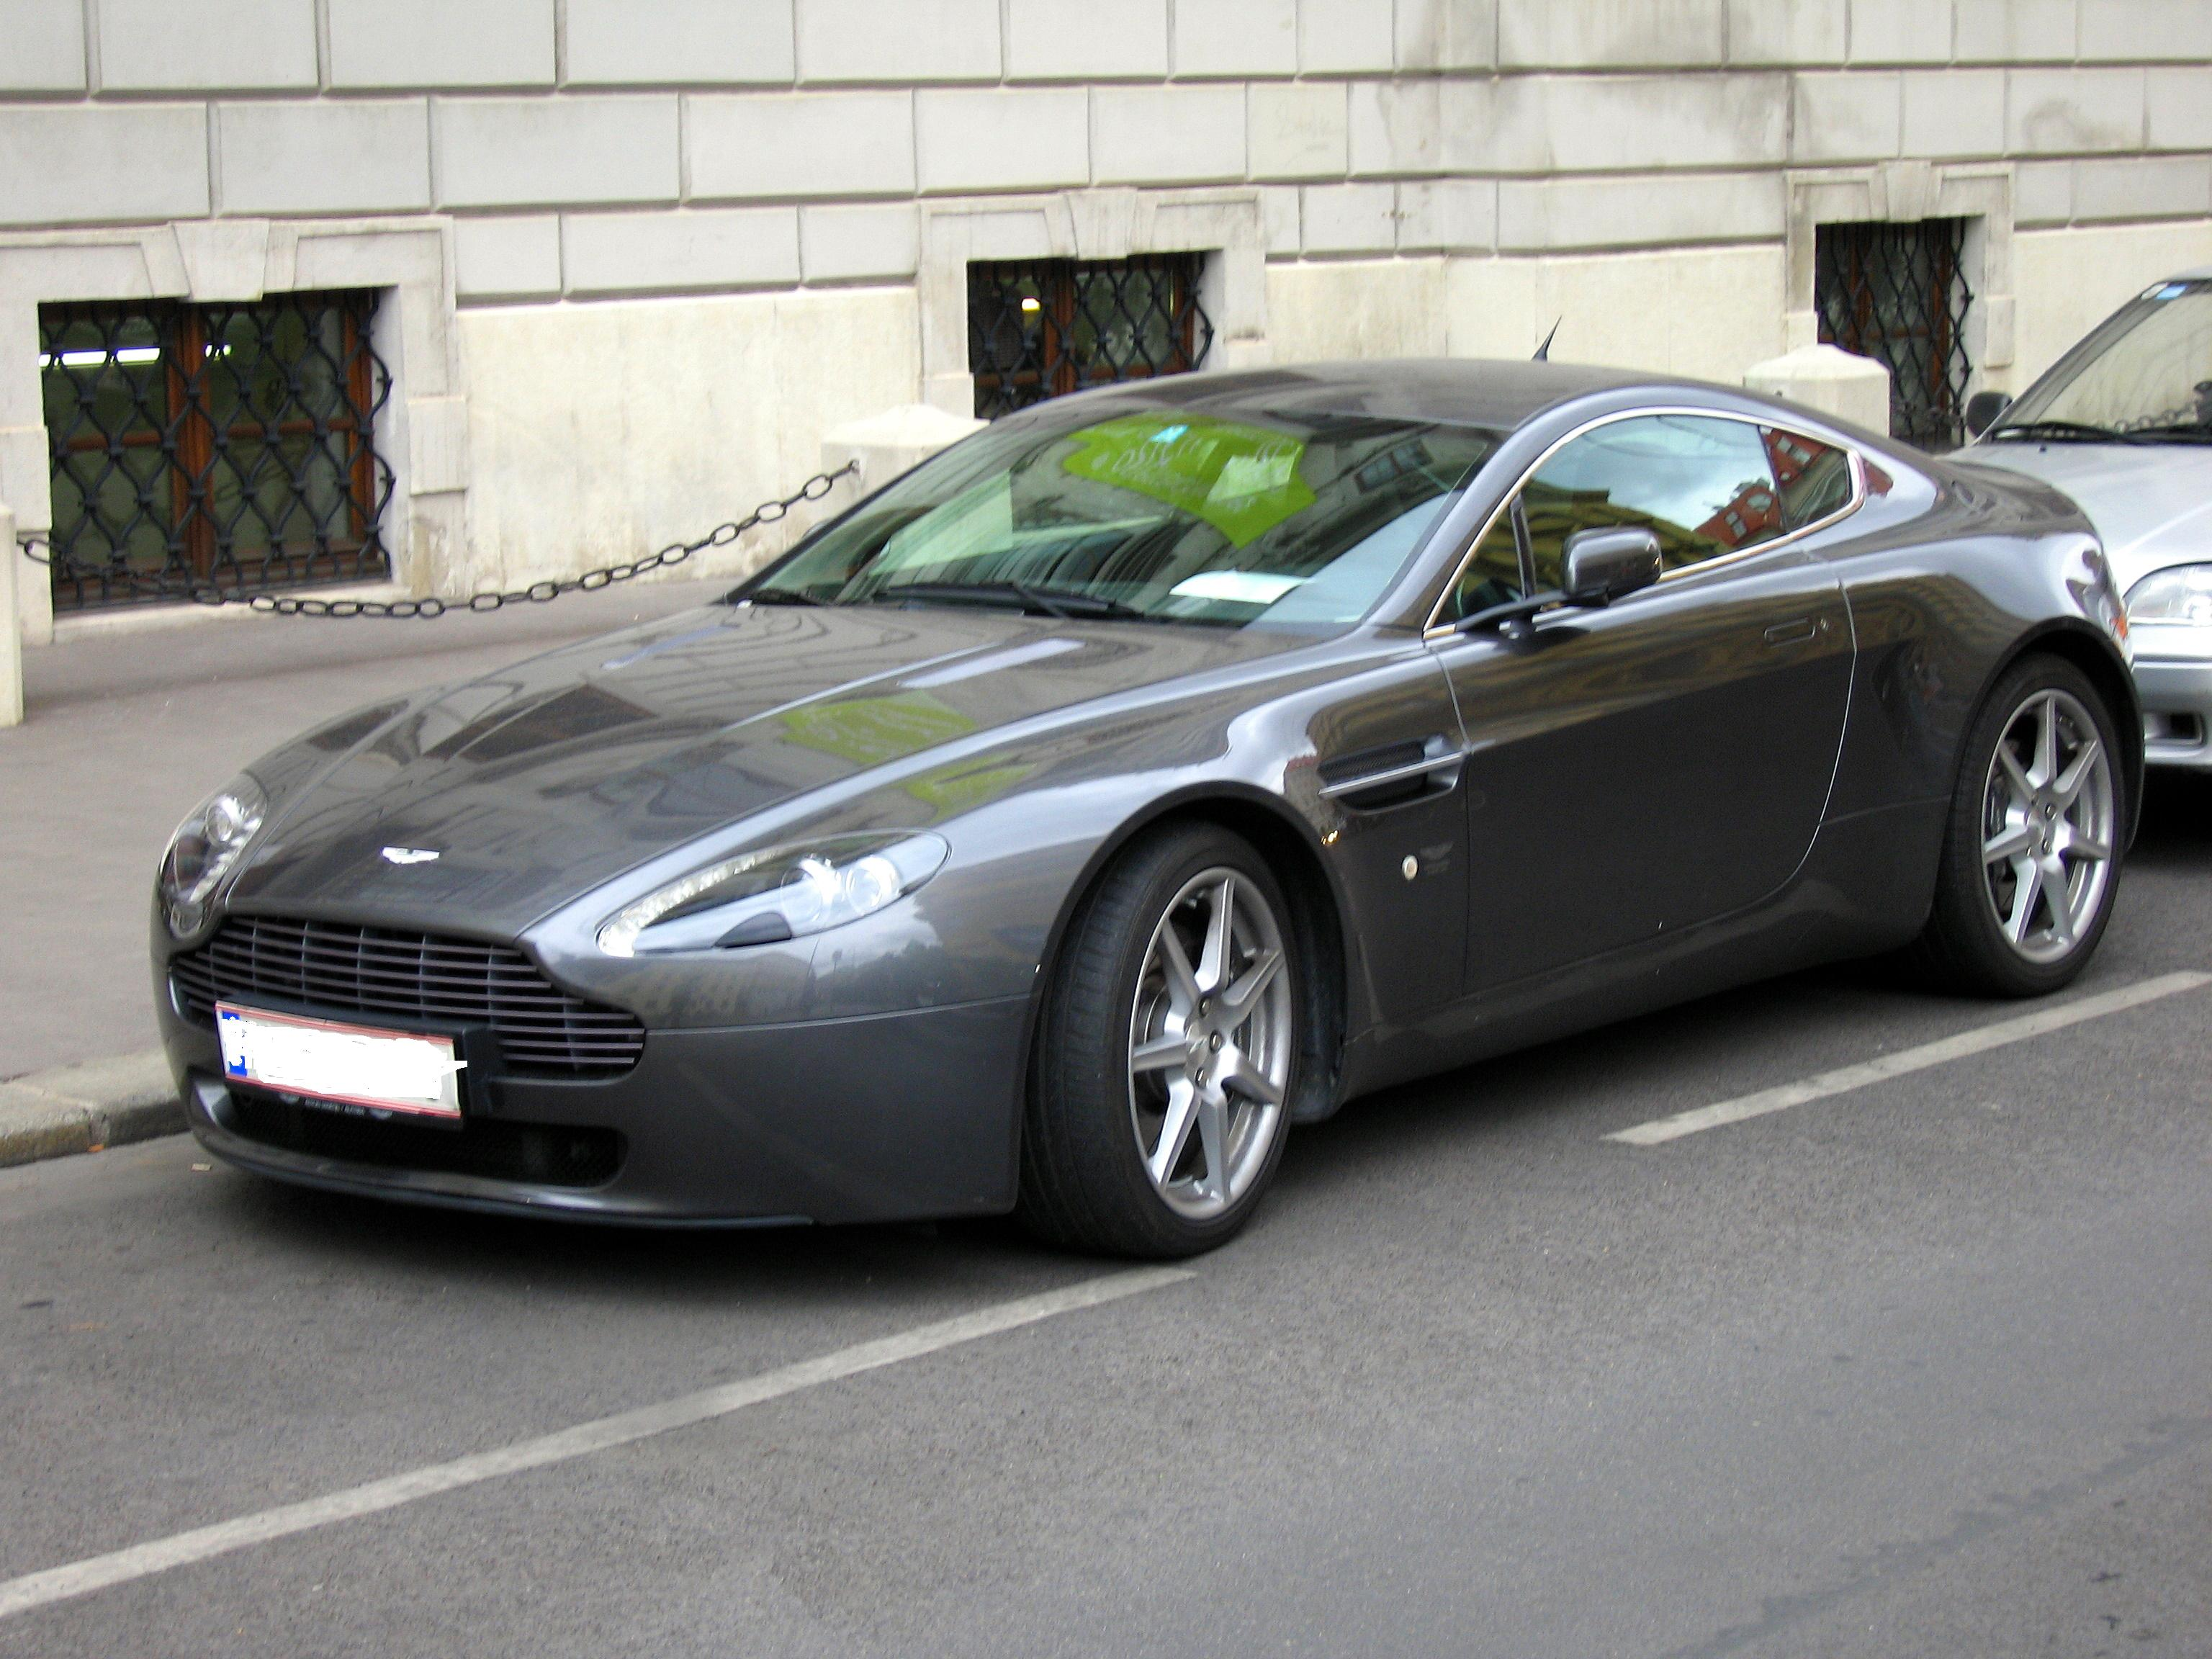 used aston martin vantage parts for sale. Cars Review. Best American Auto & Cars Review